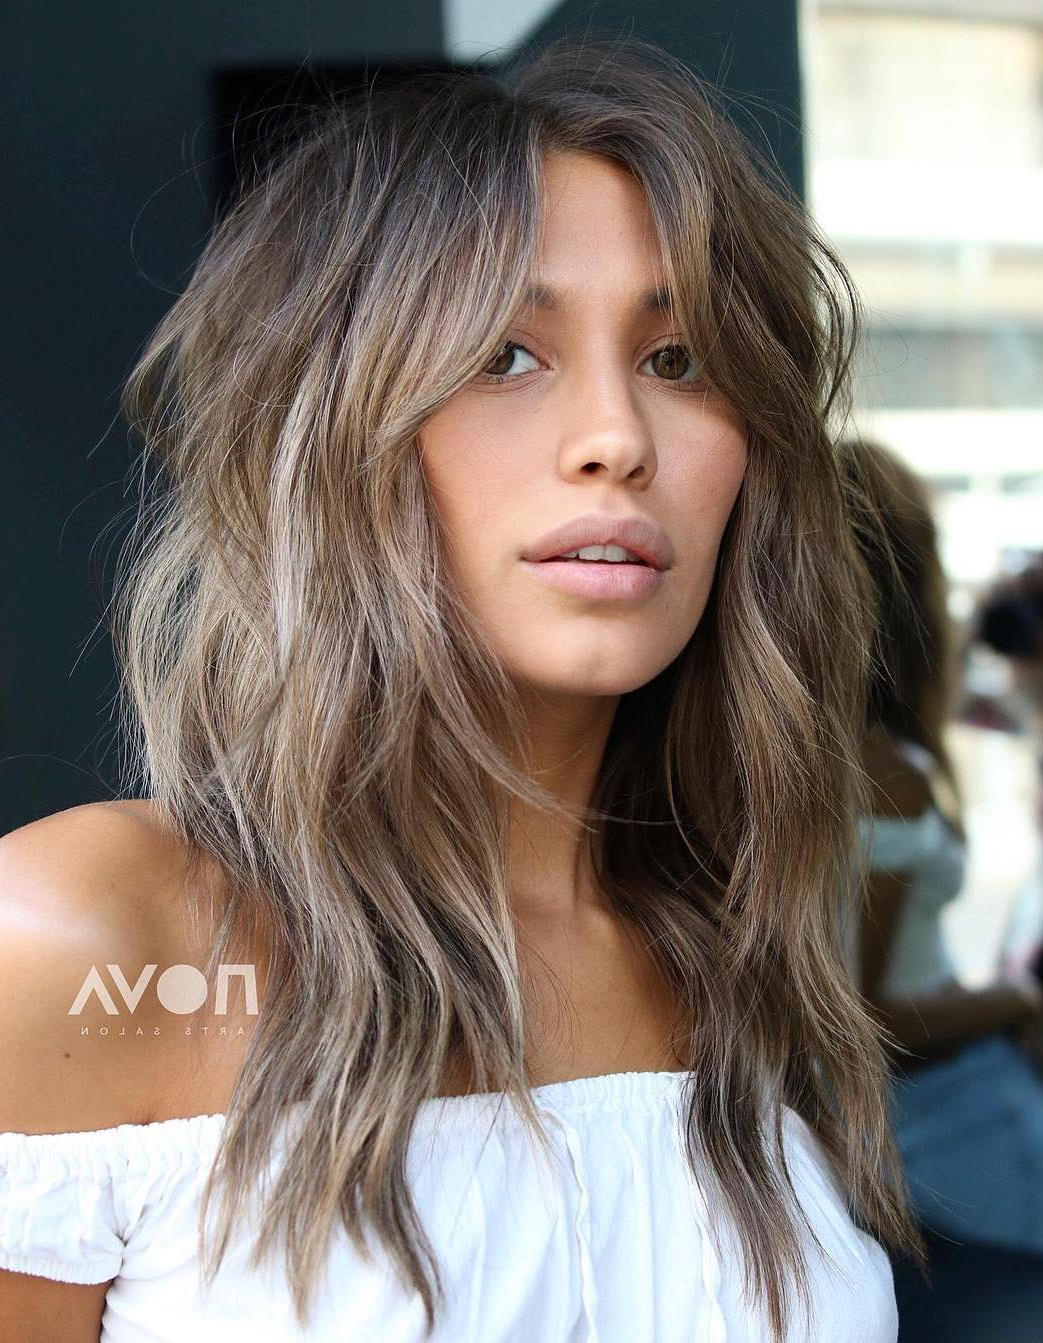 40 Modern Shag Haircuts For Women To Make A Splash For 2020 Medium Shag Hairstyles With A Wispy Fringe (Gallery 8 of 20)